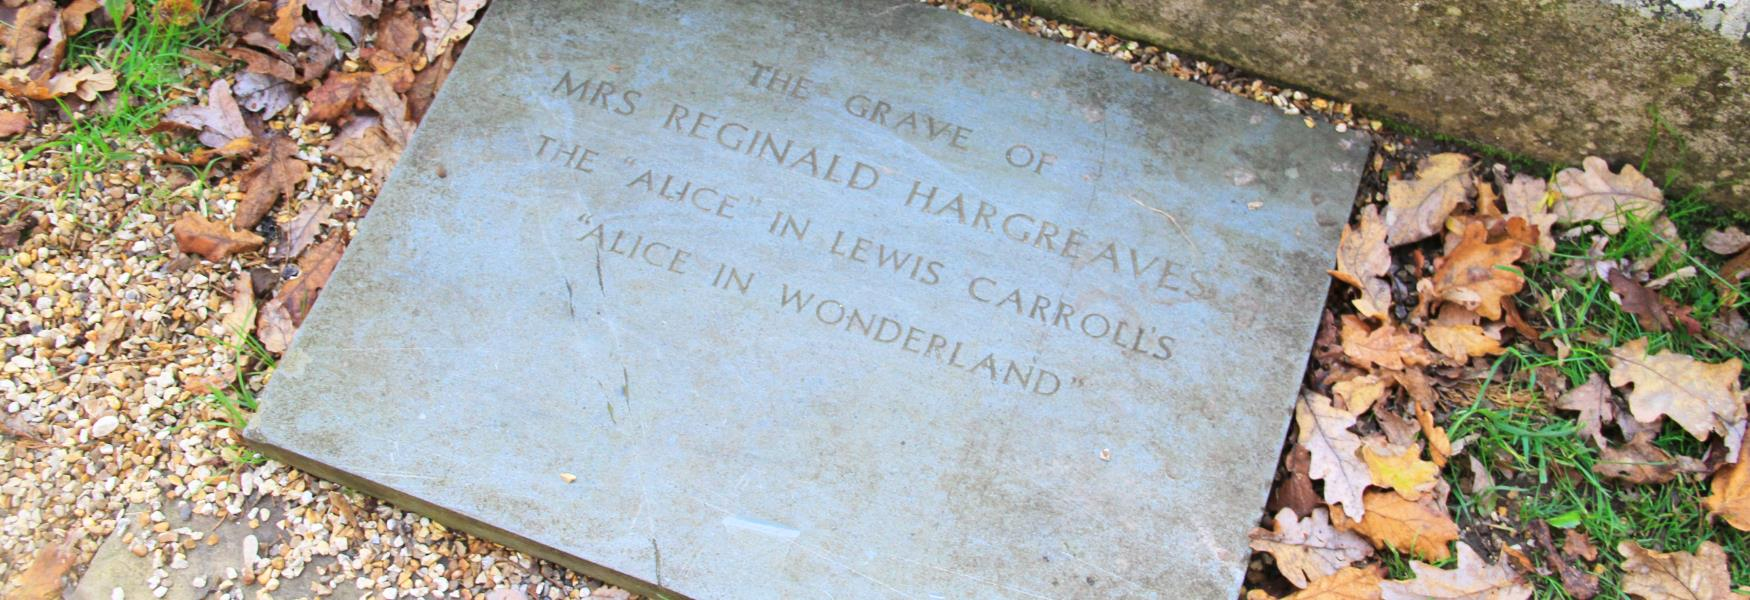 grave of reginald Hargreaves, the alice in alice in wonderful in Lyndhurst in the new forest